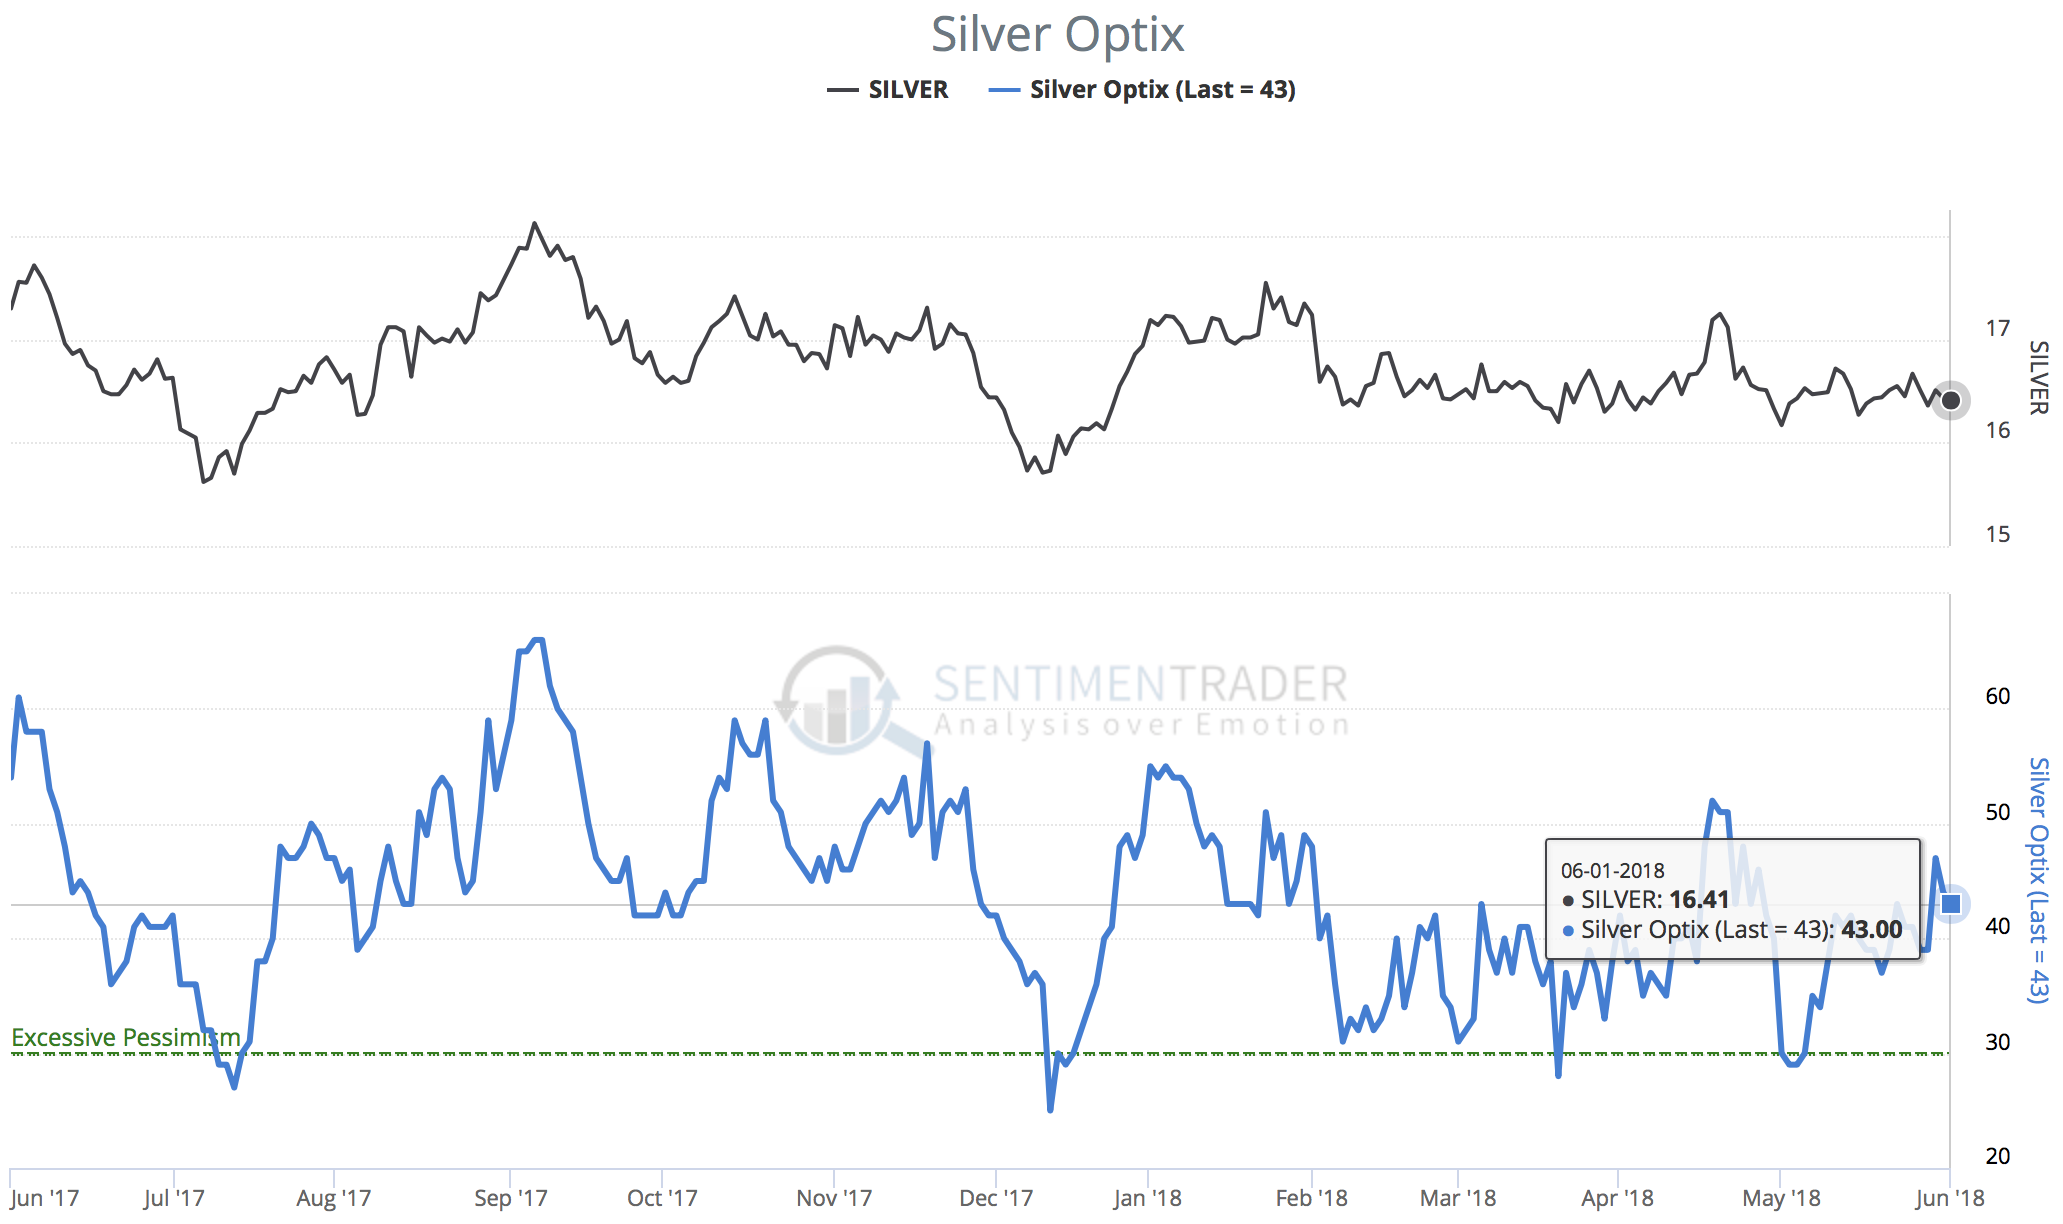 Silver optimism index as of June 1st 2018